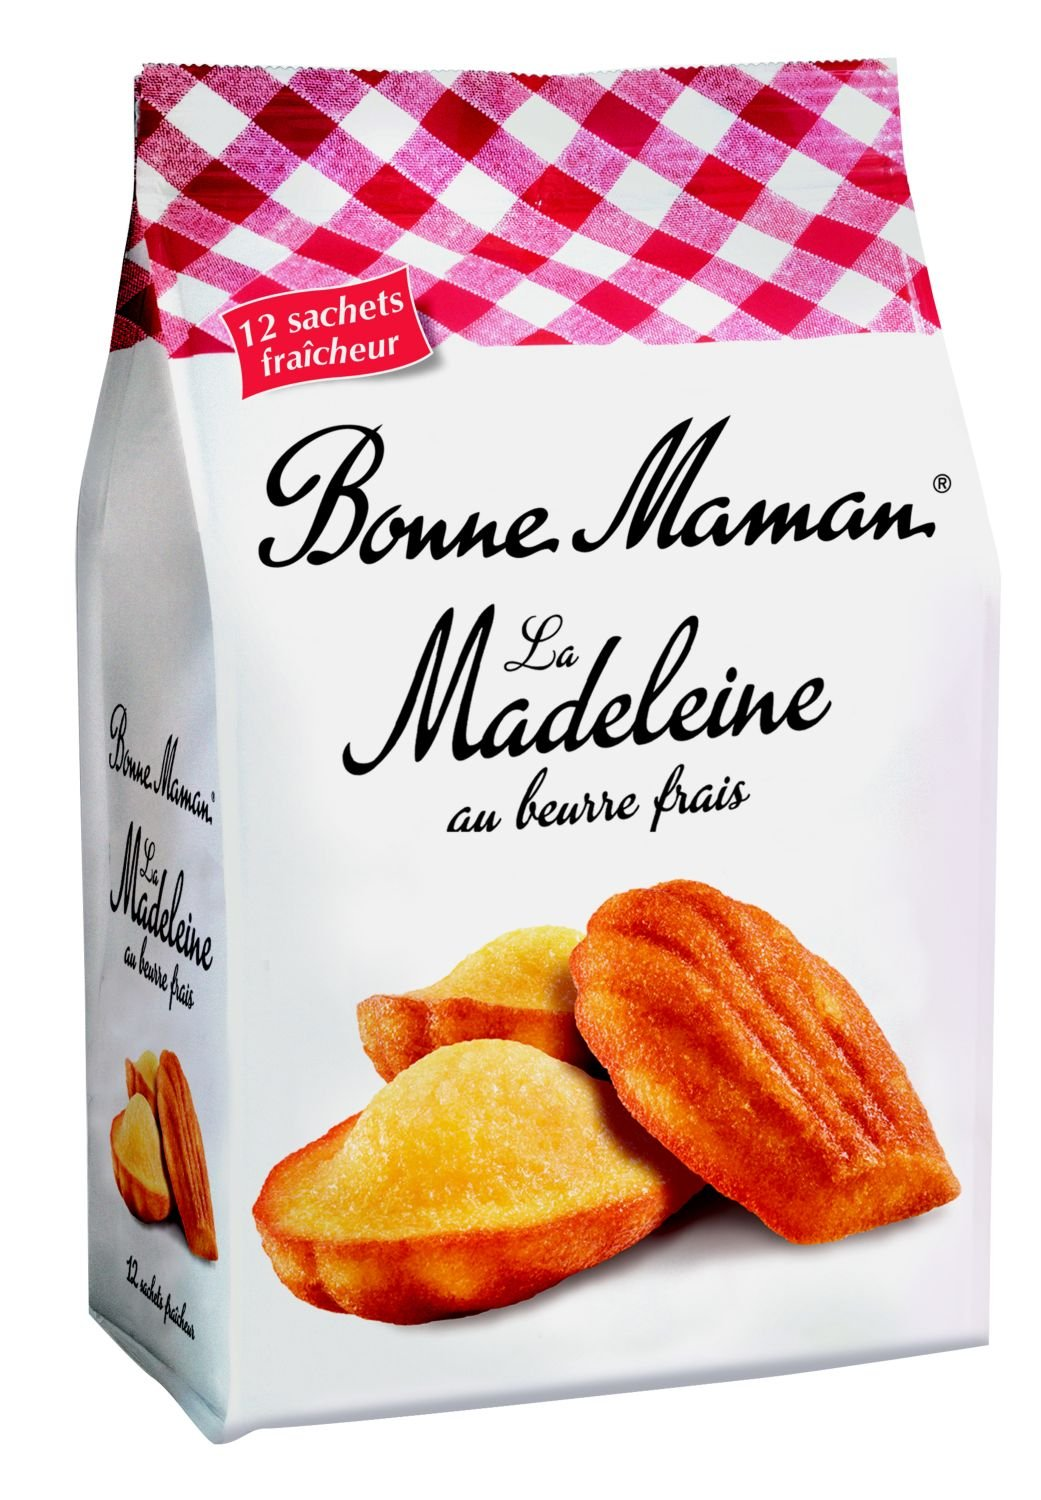 French Madeleines Tradition Bonne Maman-Madeleines Tradition Bonne Maman-2 Bag Pack